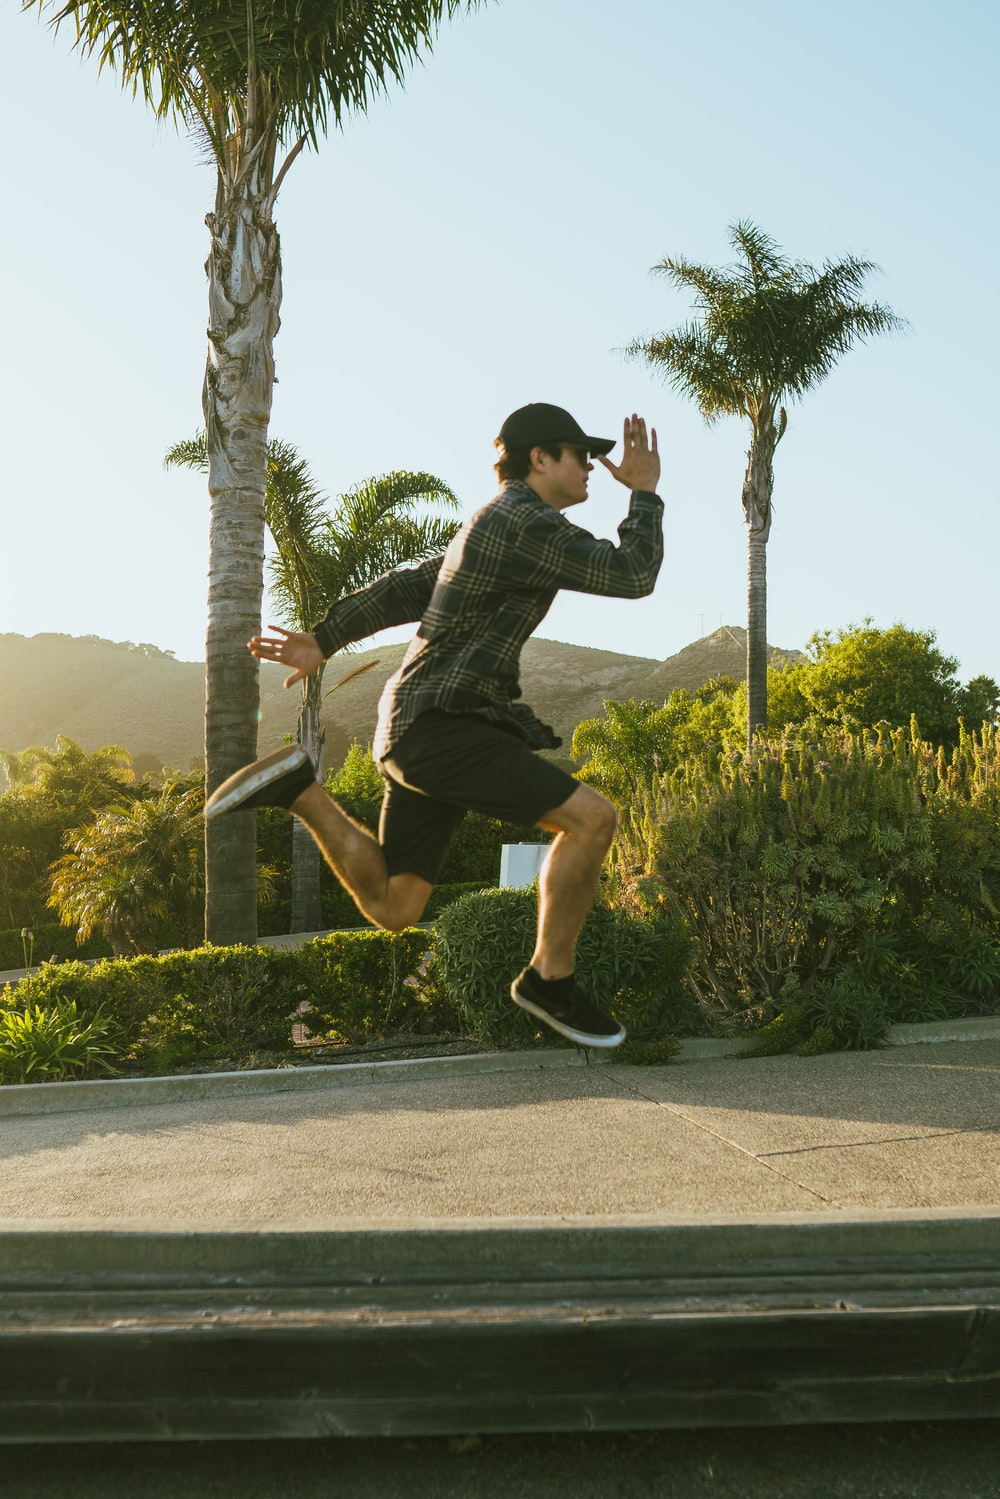 man in black shirt and black shorts jumping on gray concrete road during daytime